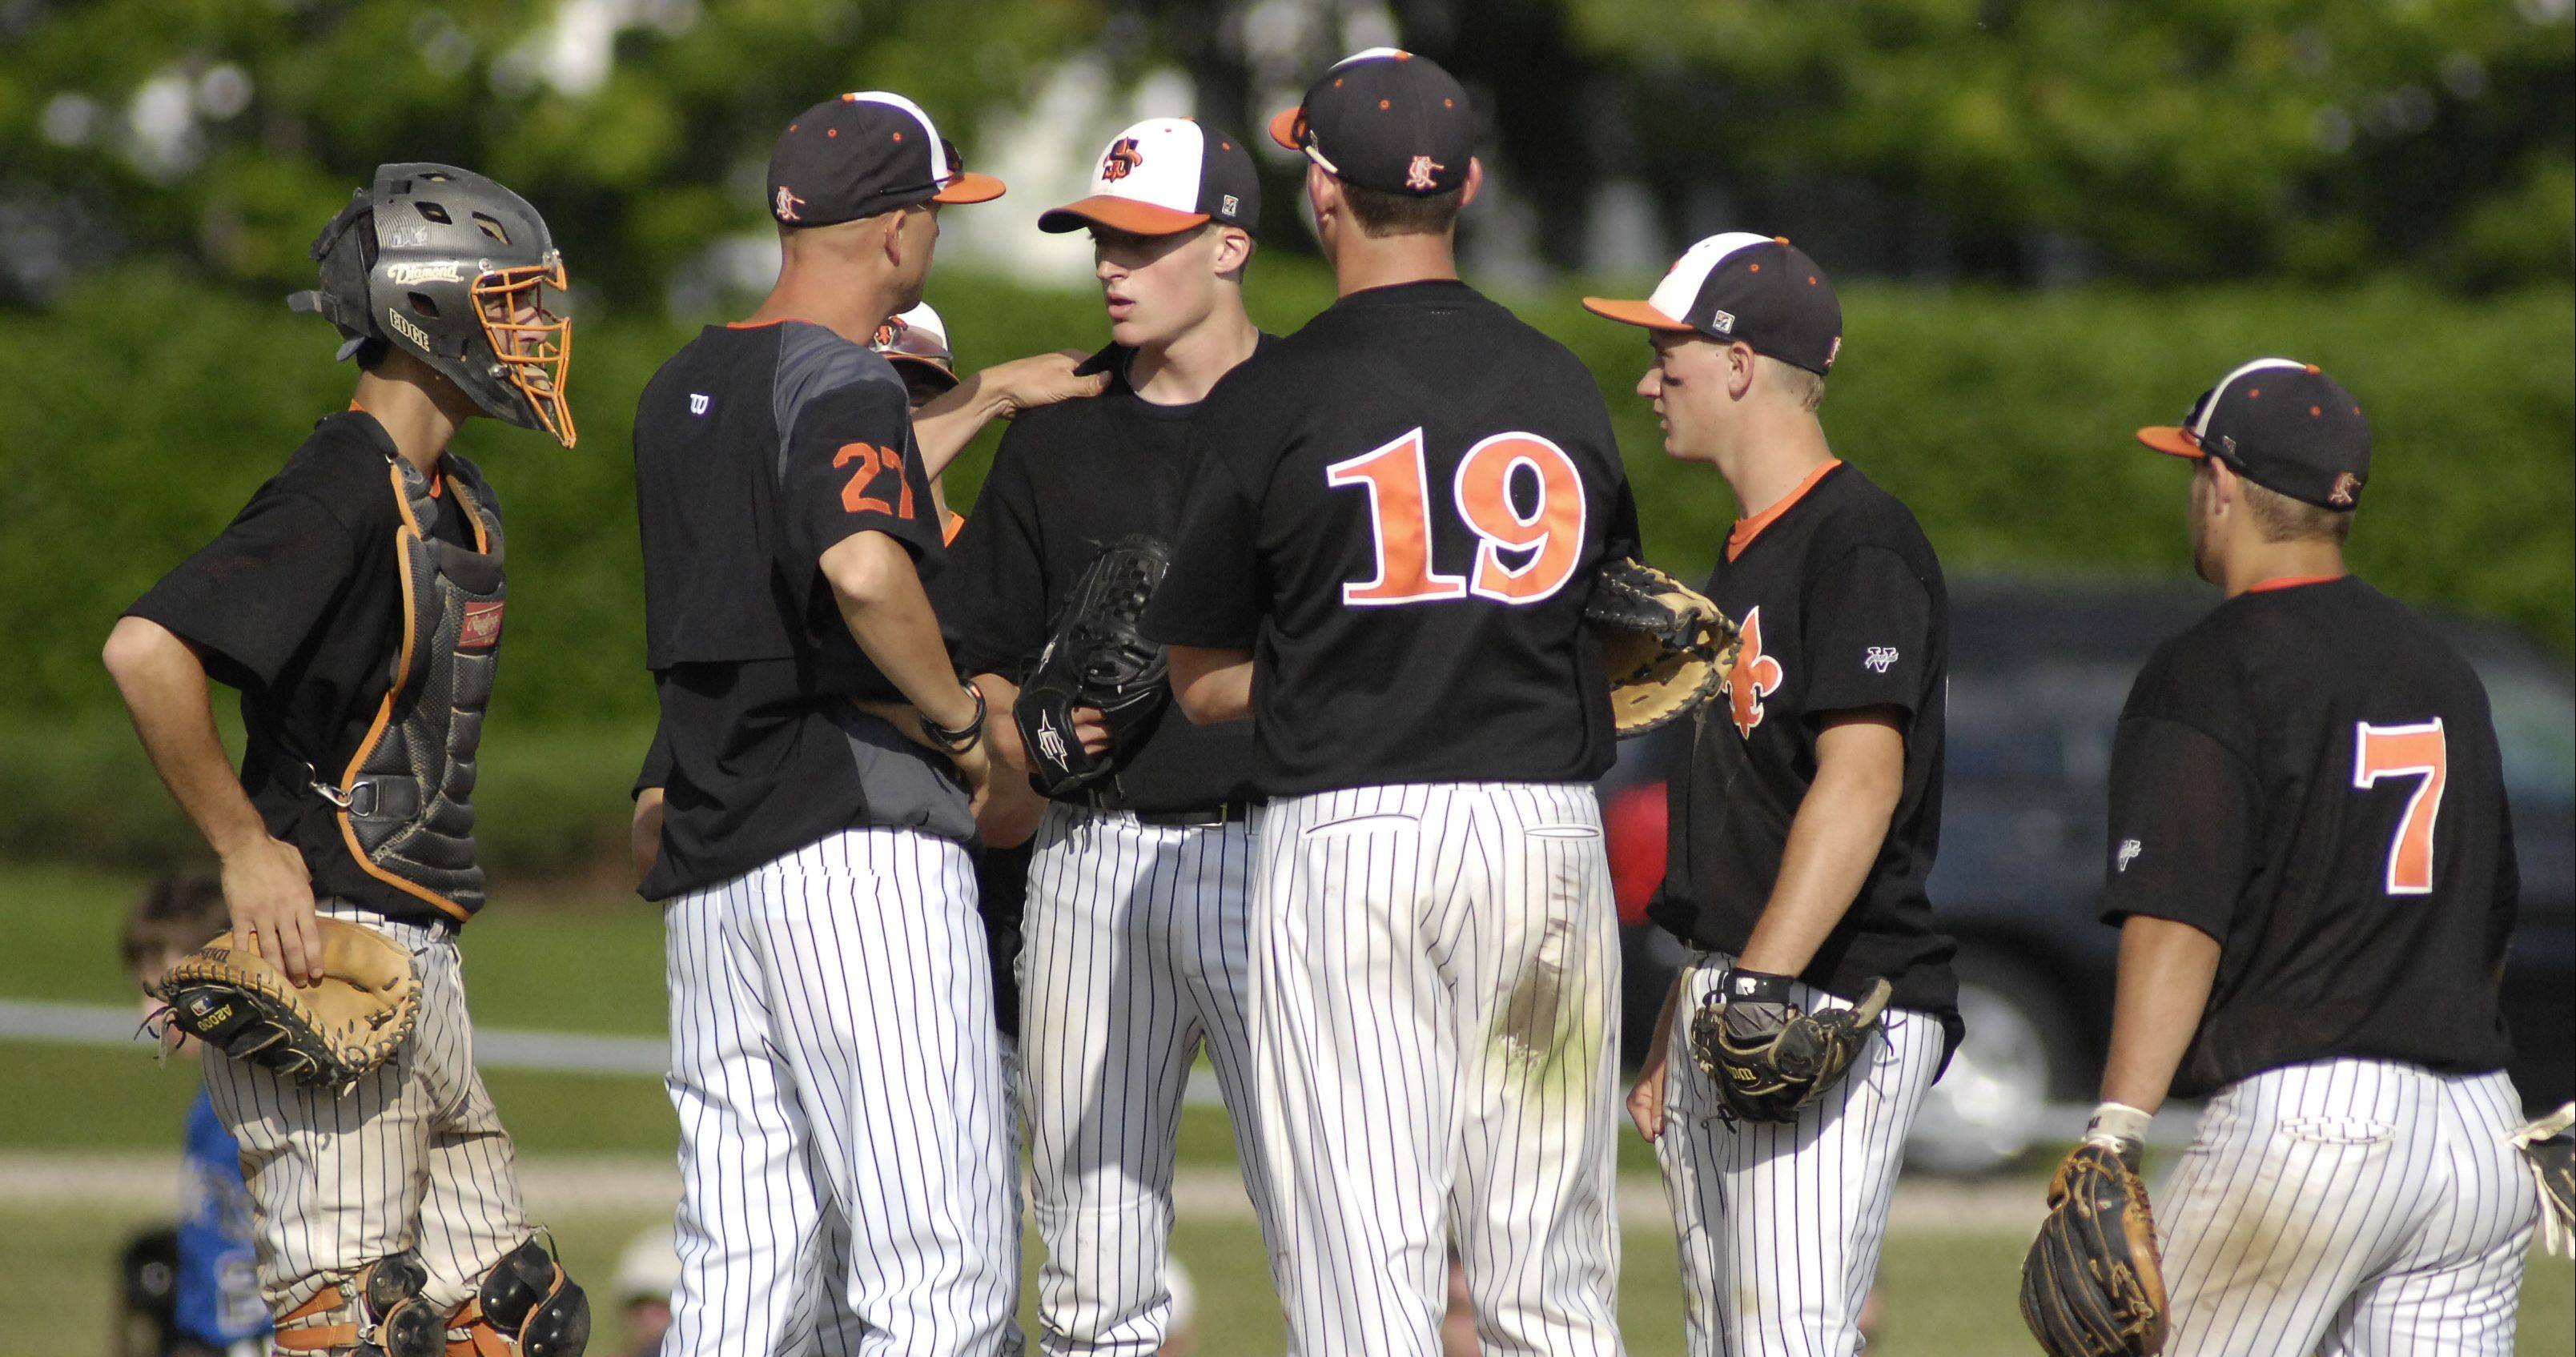 Dave Haskins, pictured talking to former pitcher Wes Benjamin, coached his final game with St. Charles East on Tuesday.